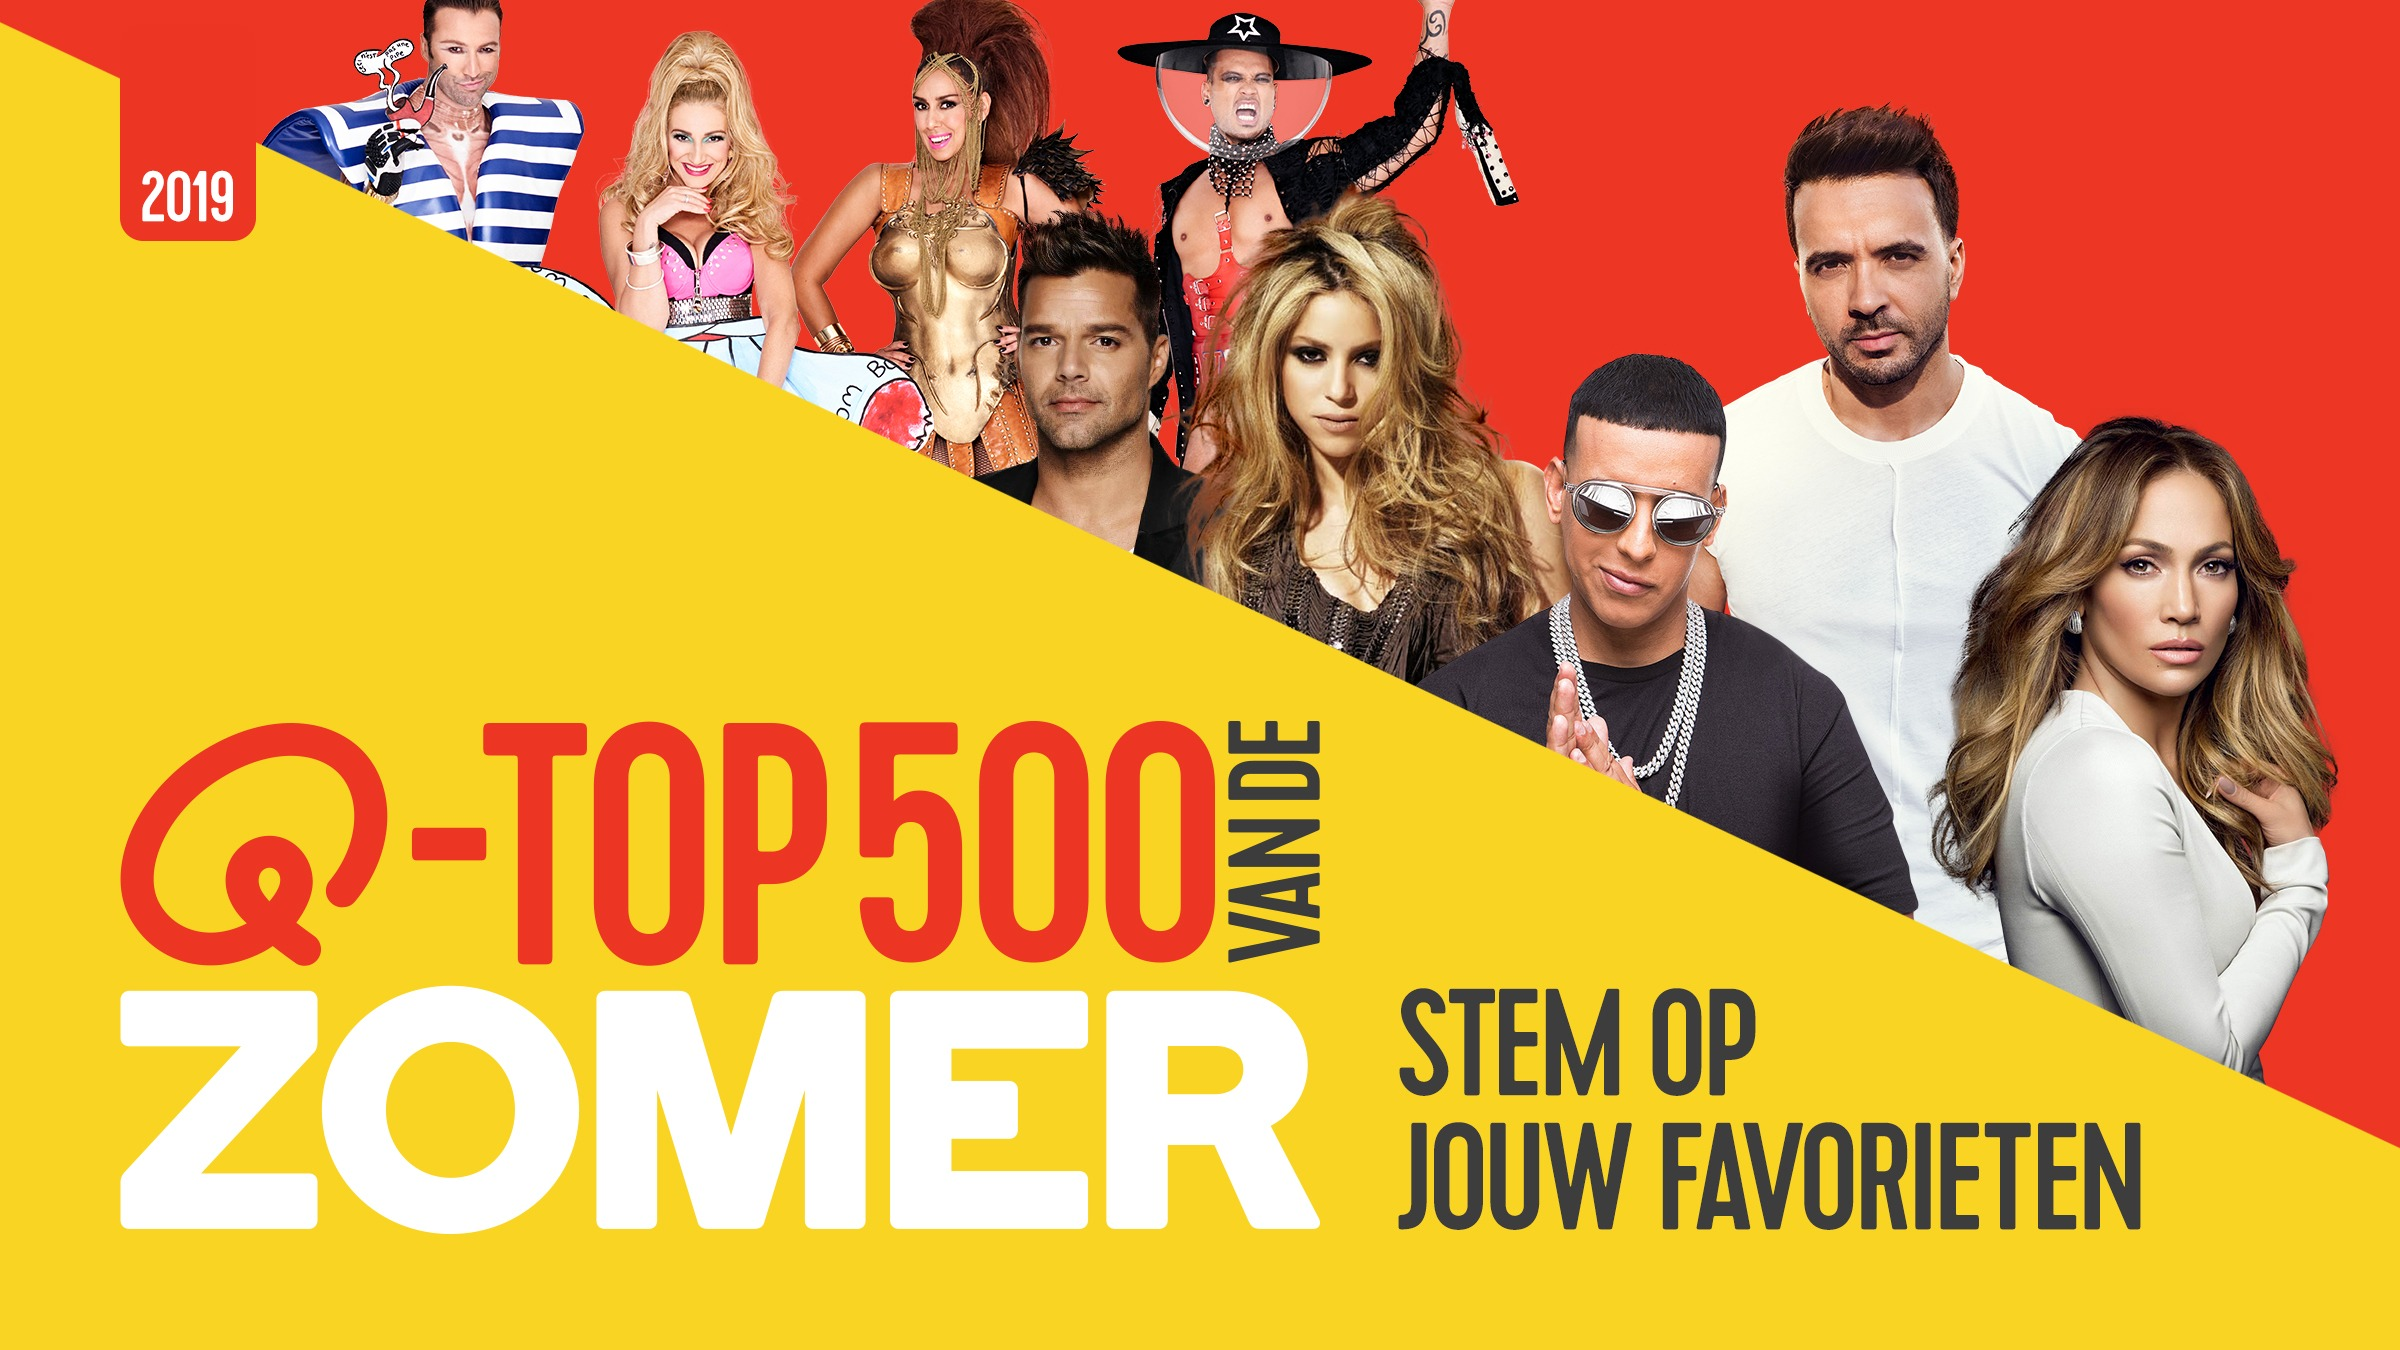 Qmusic teaser top500 zomer 2019 stem